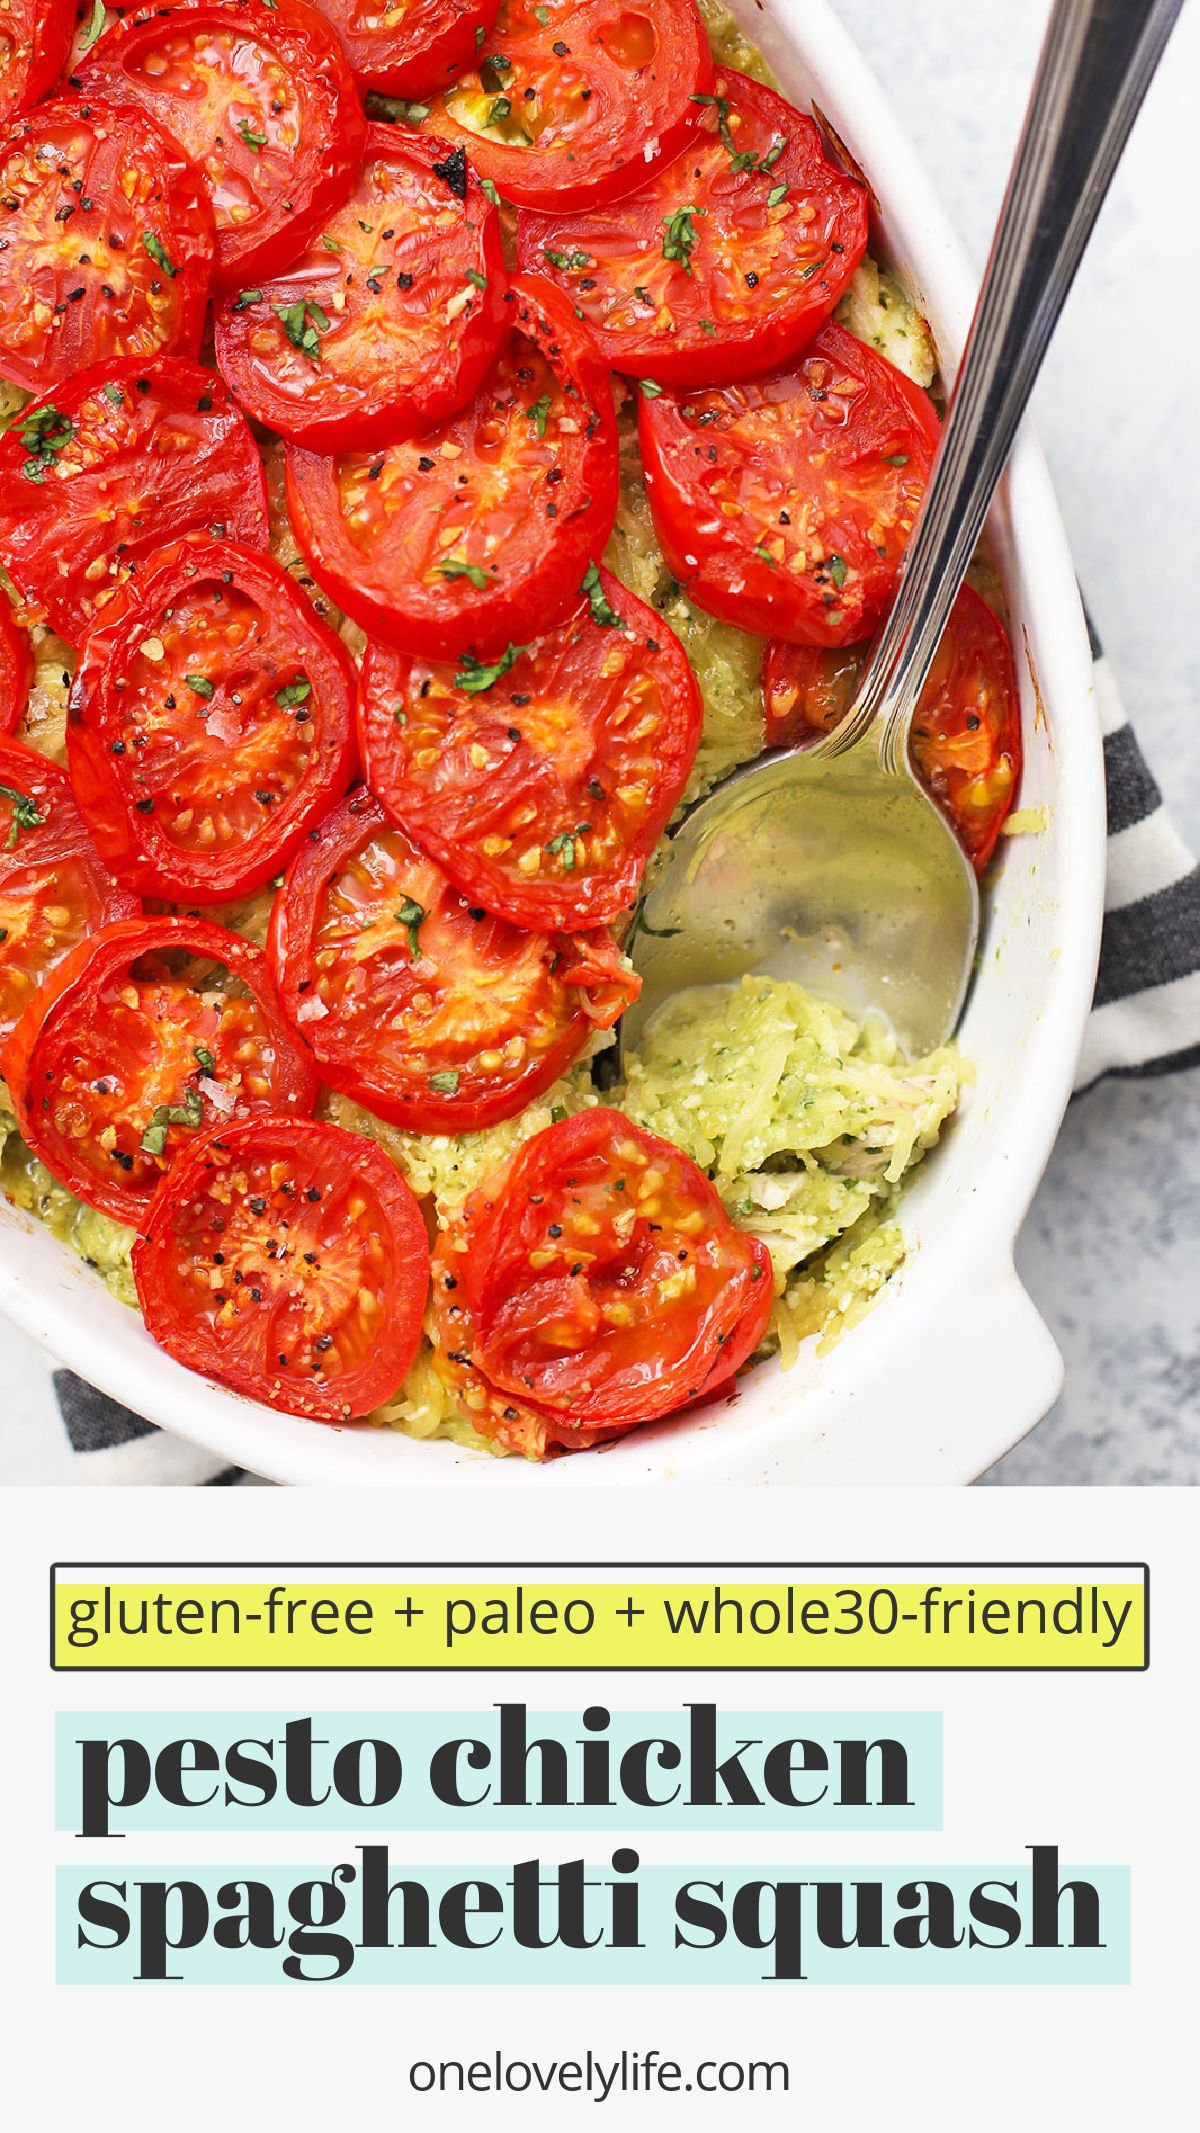 Pesto Chicken Spaghetti Squash - This yummy pesto spaghetti squash bake packs a TON of flavor with only four main ingredients. A winner all around! (Gluten Free, Dairy Free, Paleo & Whole30 Approved!) // spaghetti squash casserole // spaghetti squash bake // chicken spaghetti squash // pesto spaghetti squash recipe // Whole30 dinner #whole30 #paleo #glutenfree #pesto #spaghettisquash #dairyfree